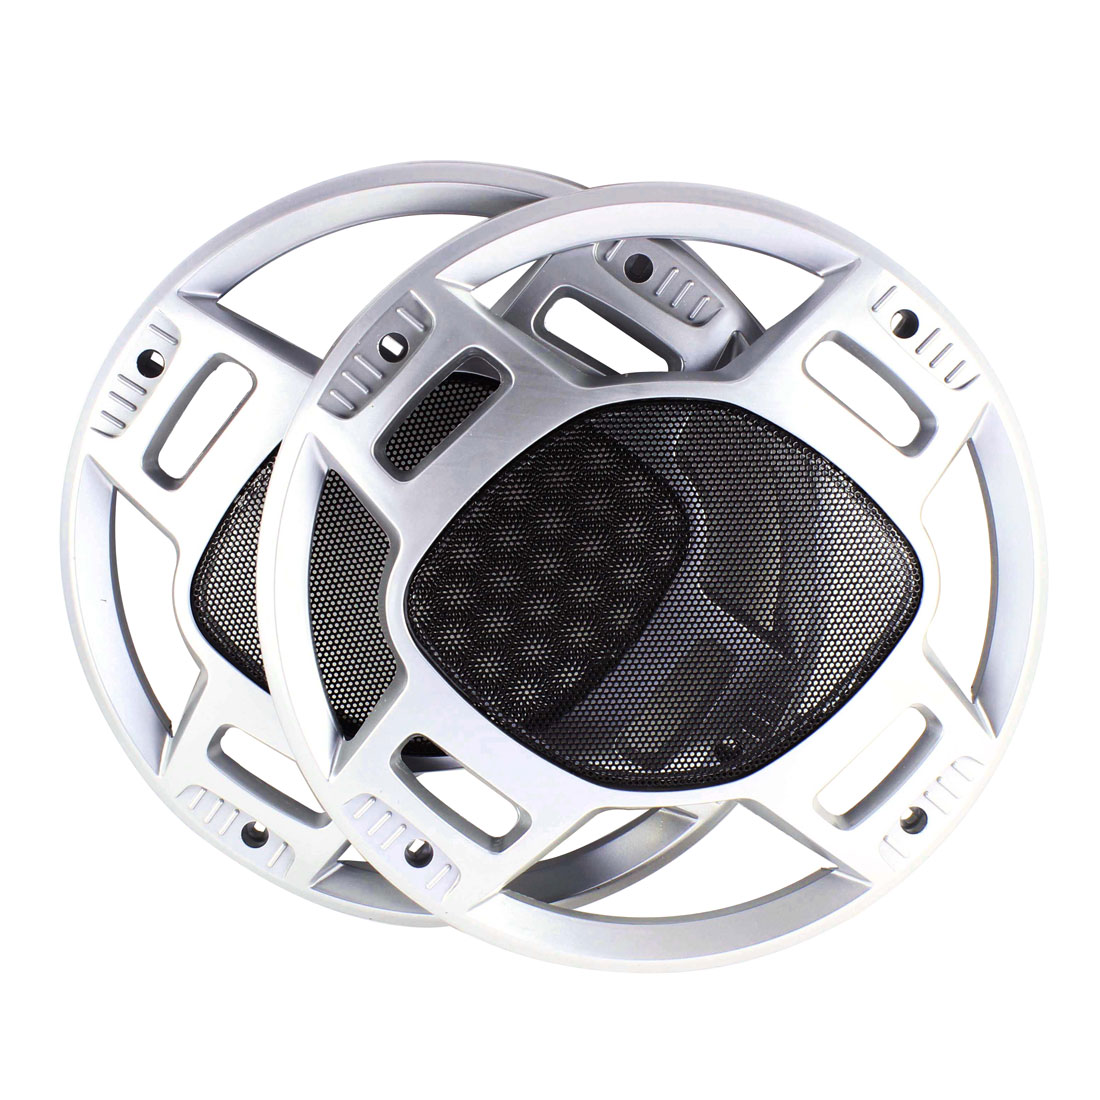 "Unique Bargains Car 10.6"" Dia Plastic Mesh Speaker Sub Box Subwoofer Grill Horn Cover x 2"